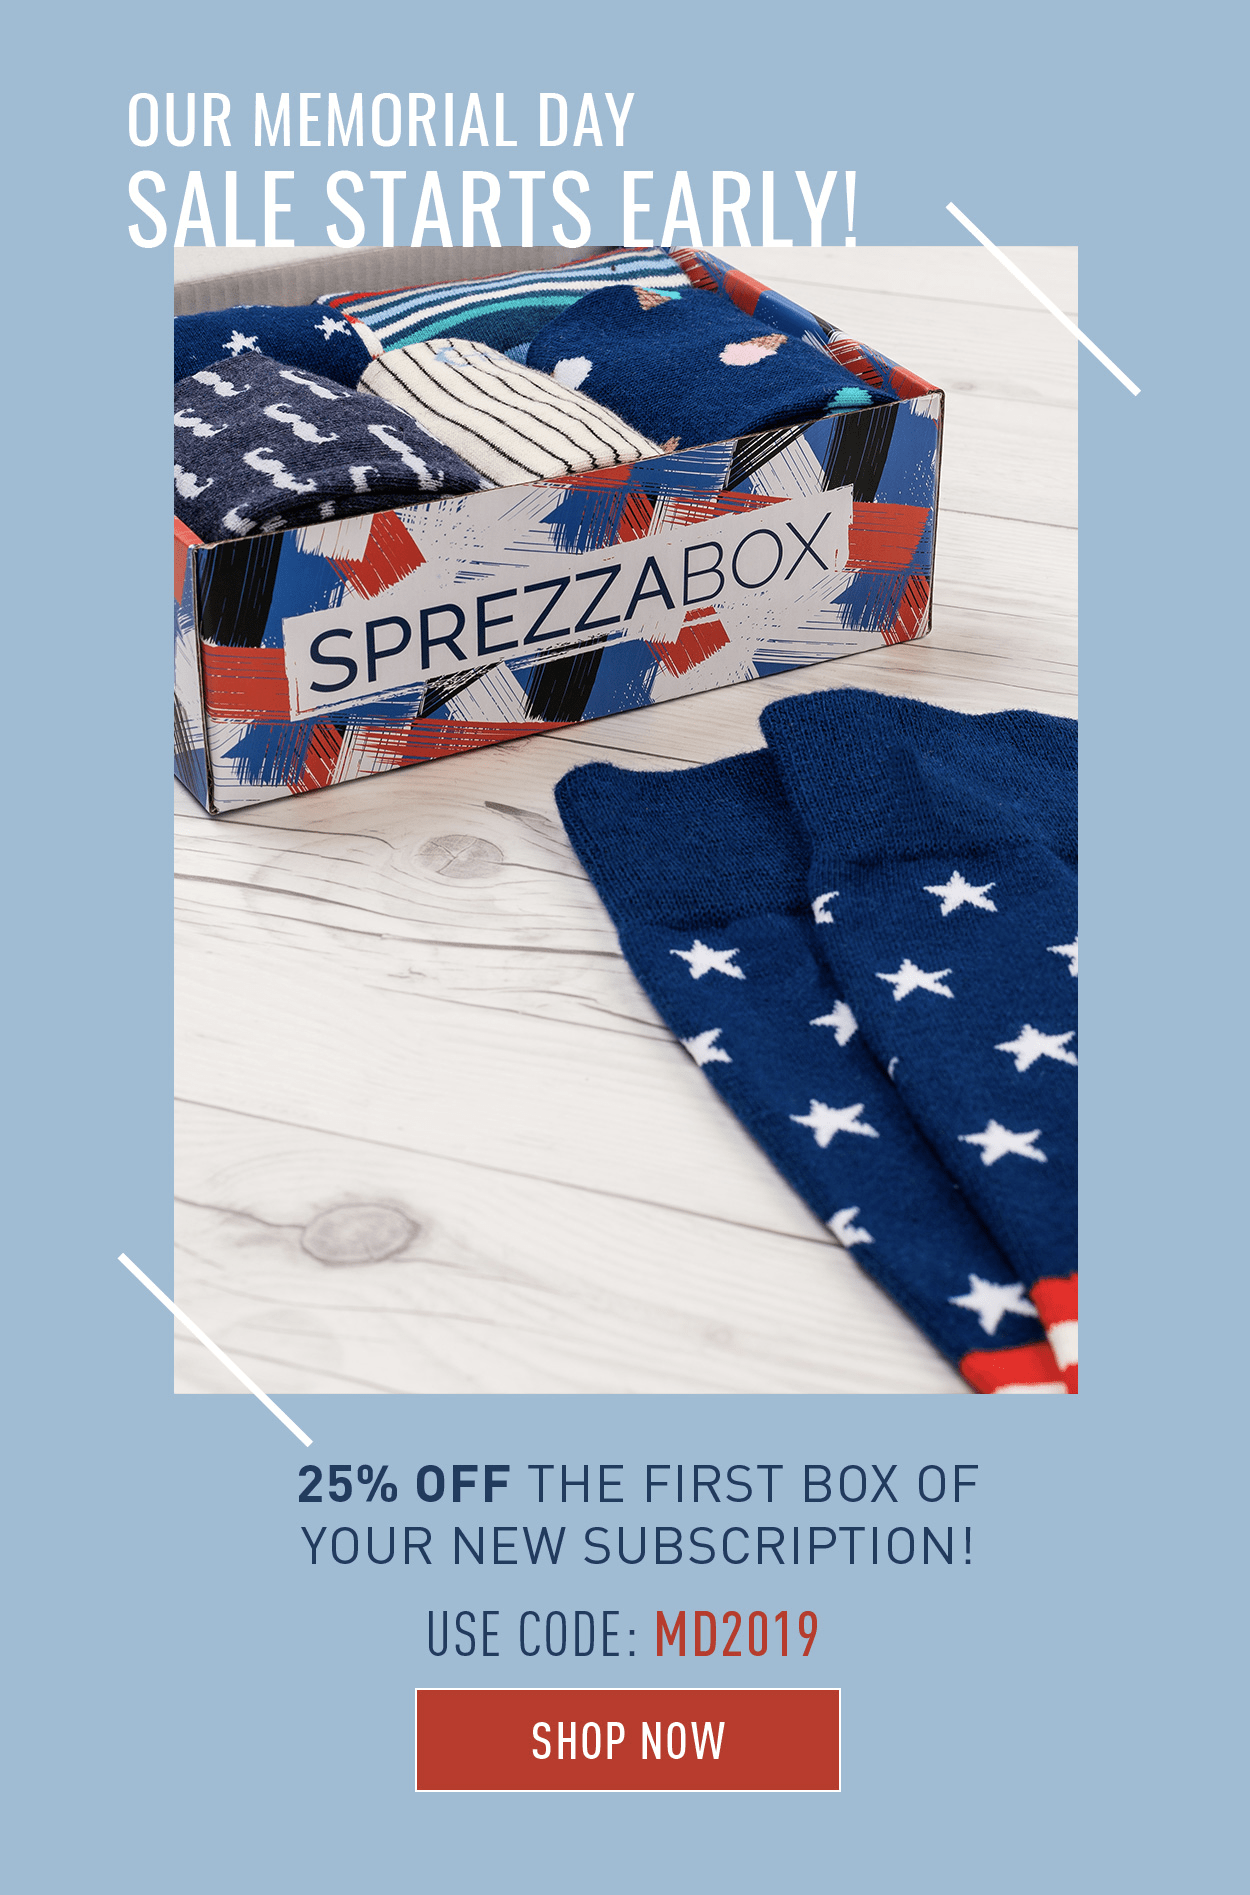 SprezzaBox Memorial Day Coupon – 25% Off First Box!